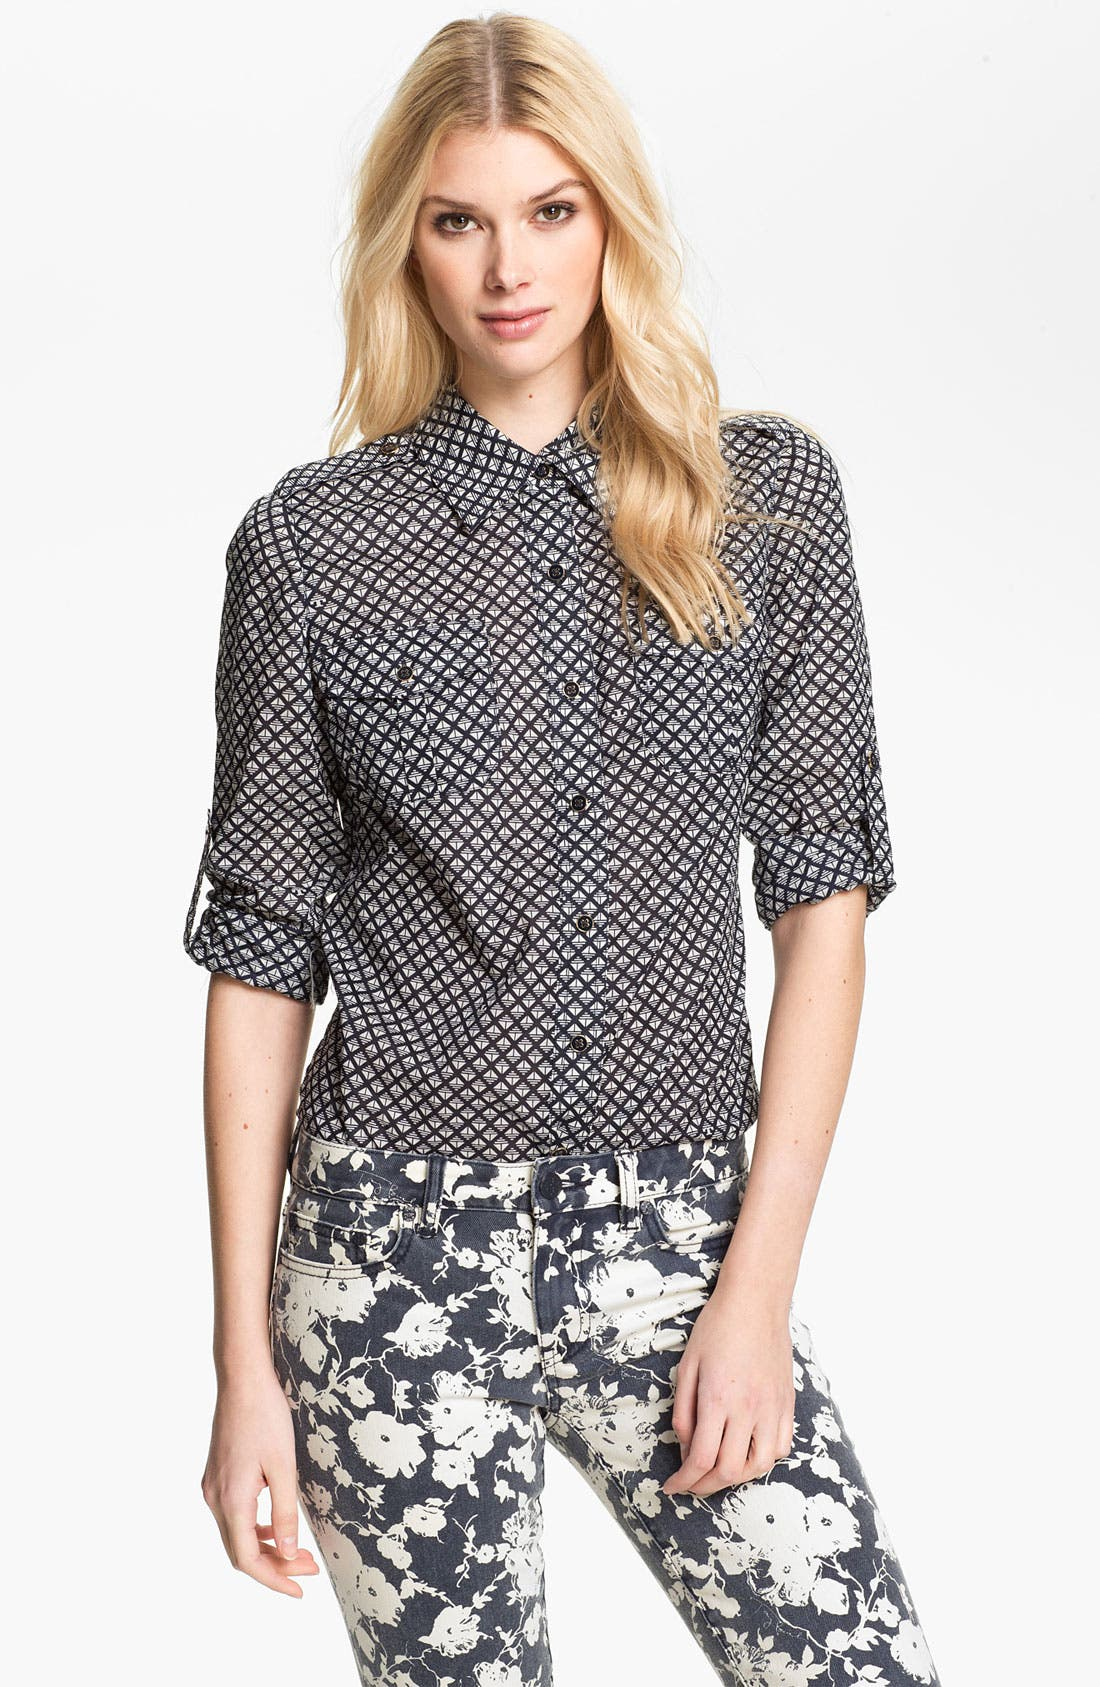 Alternate Image 1 Selected - Tory Burch 'Brigitte' Print Military Shirt